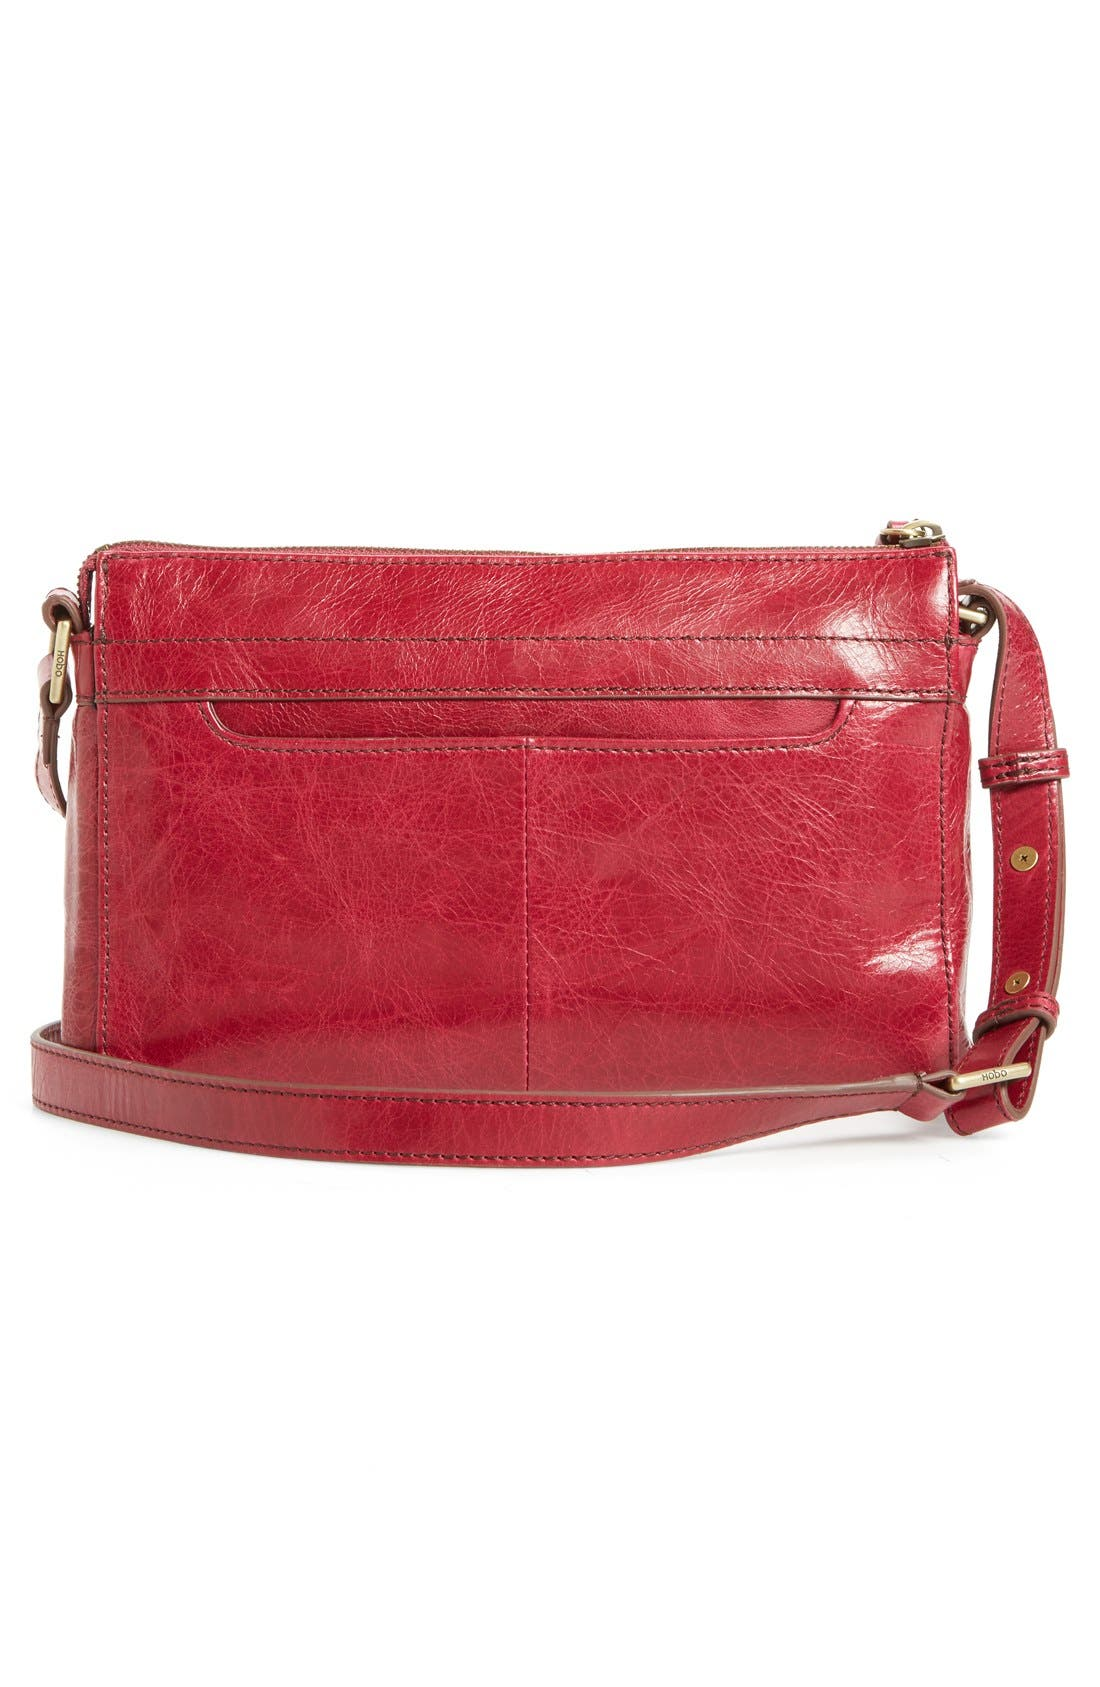 Tobey Leather Crossbody Bag,                             Alternate thumbnail 34, color,